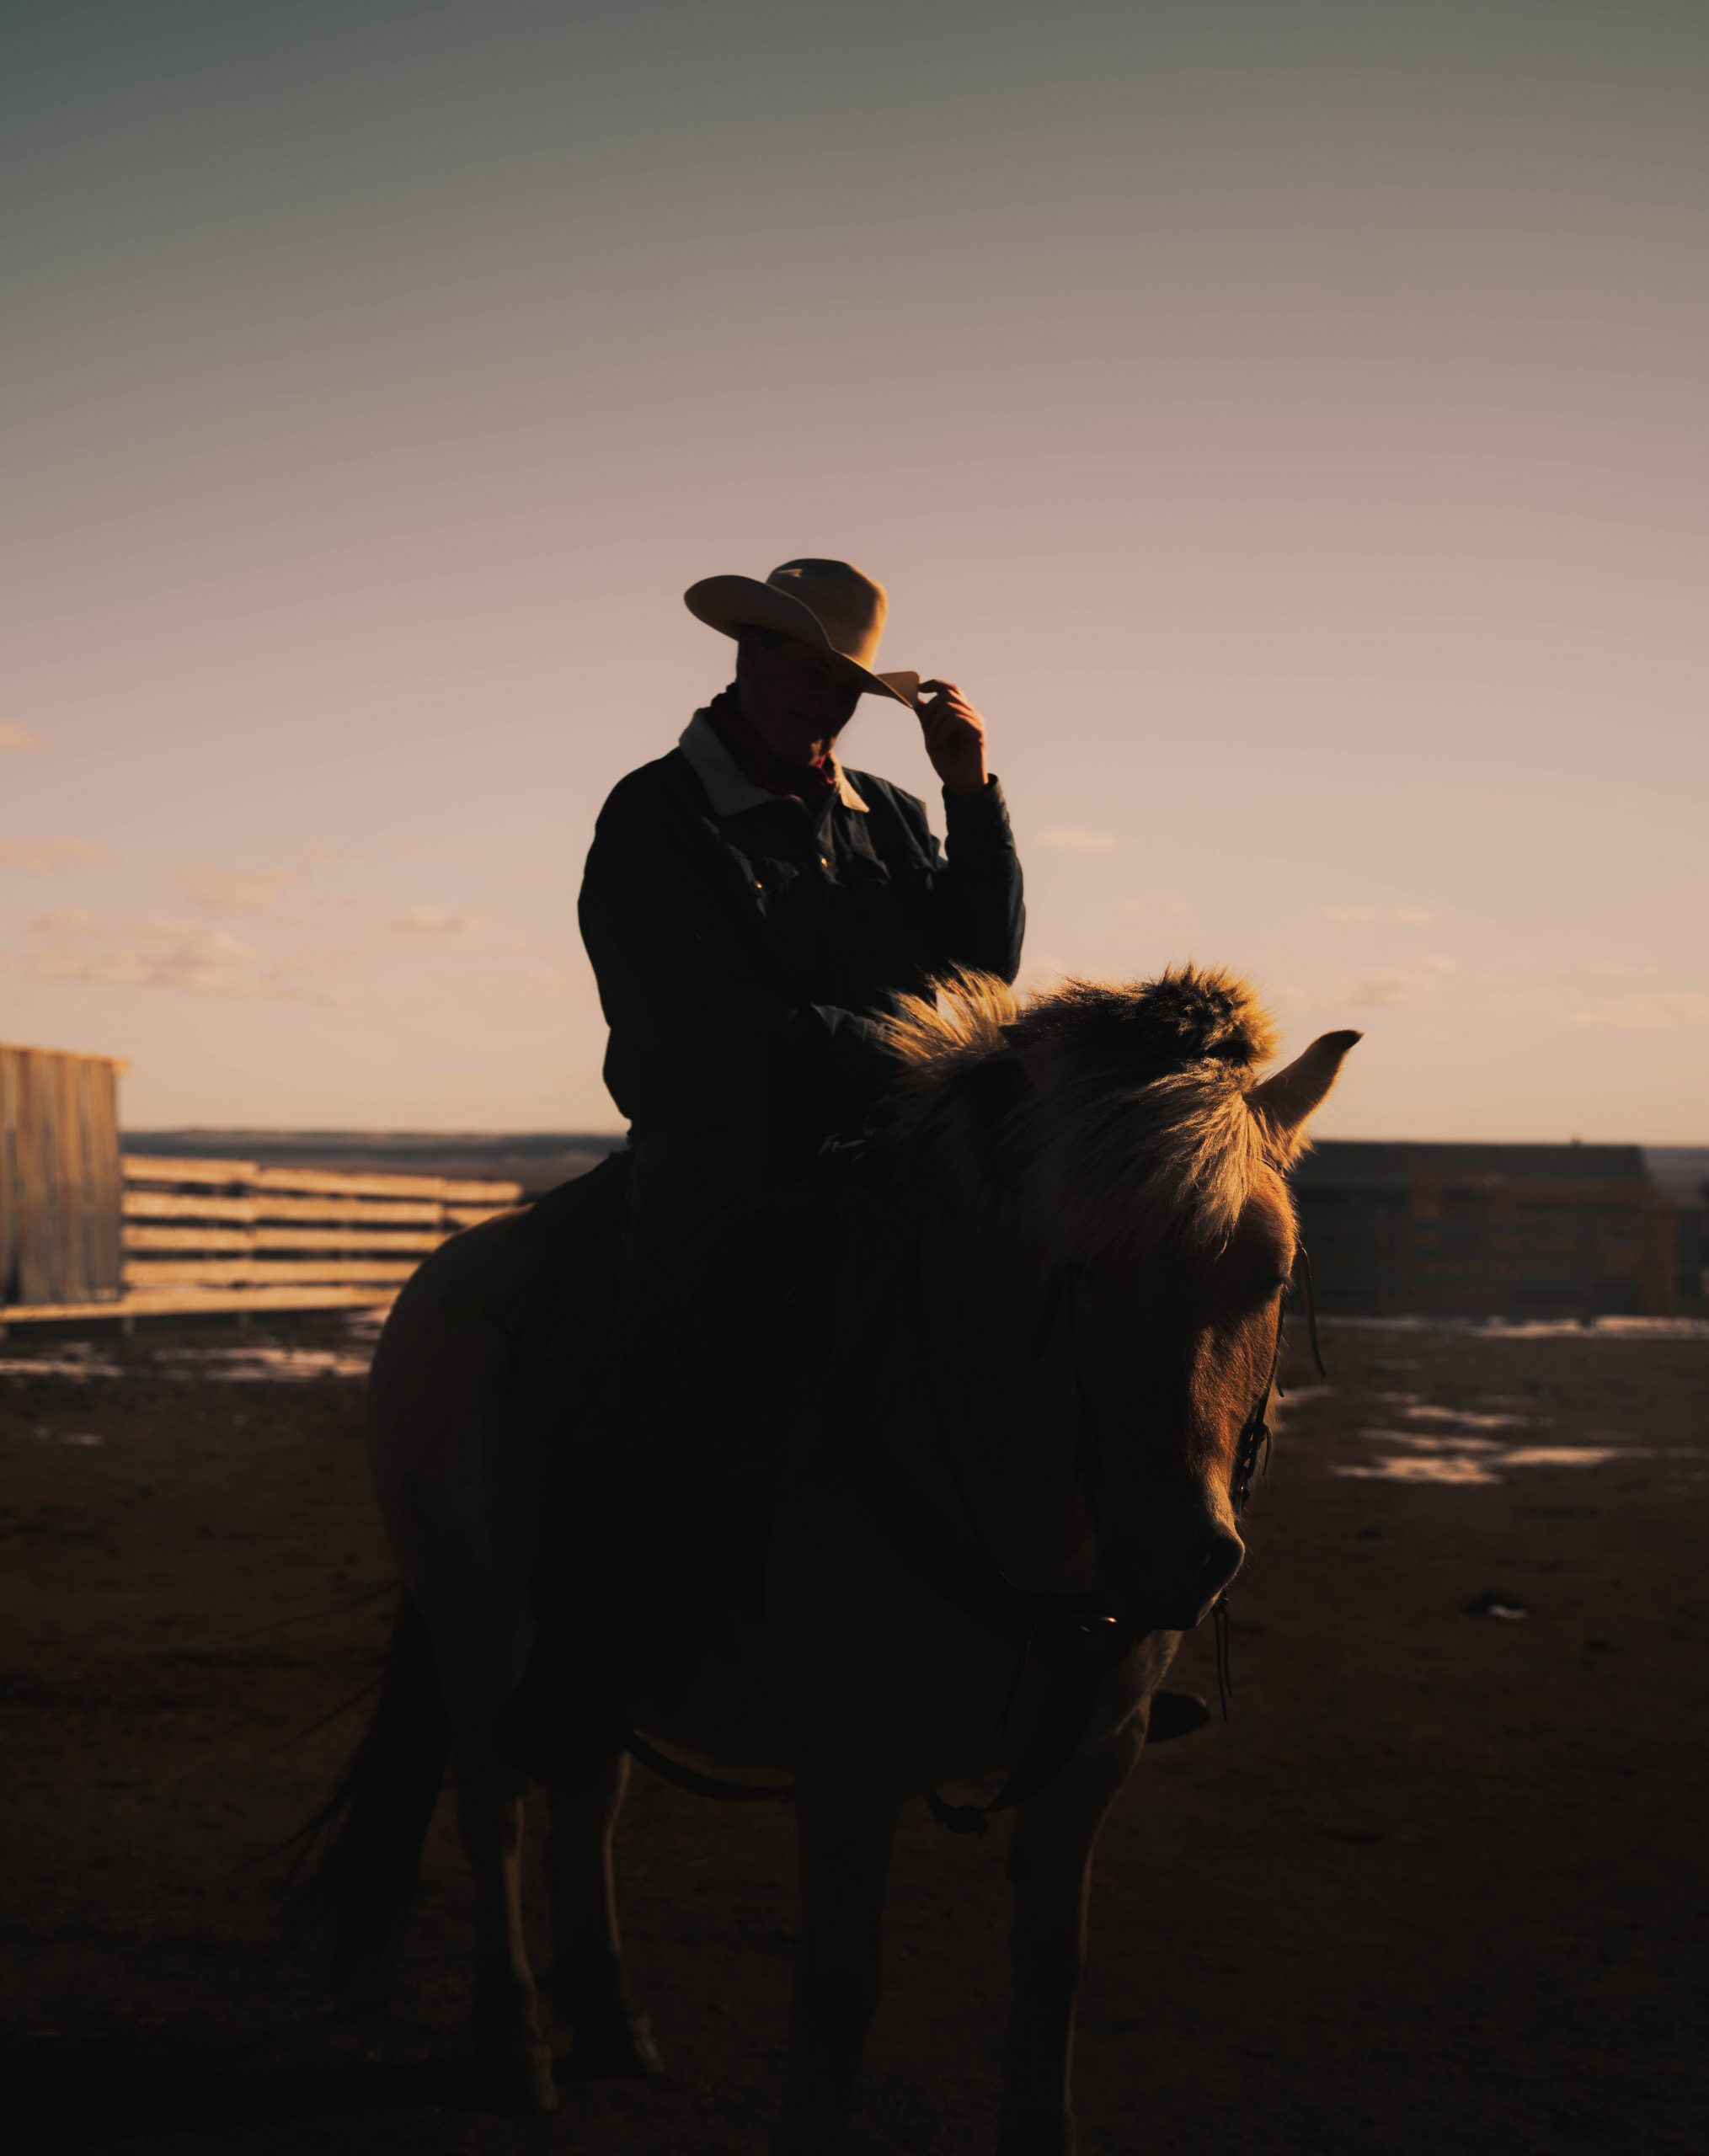 color portrait photograph of a man and his horse in Dakota, USA by Noam Azouz